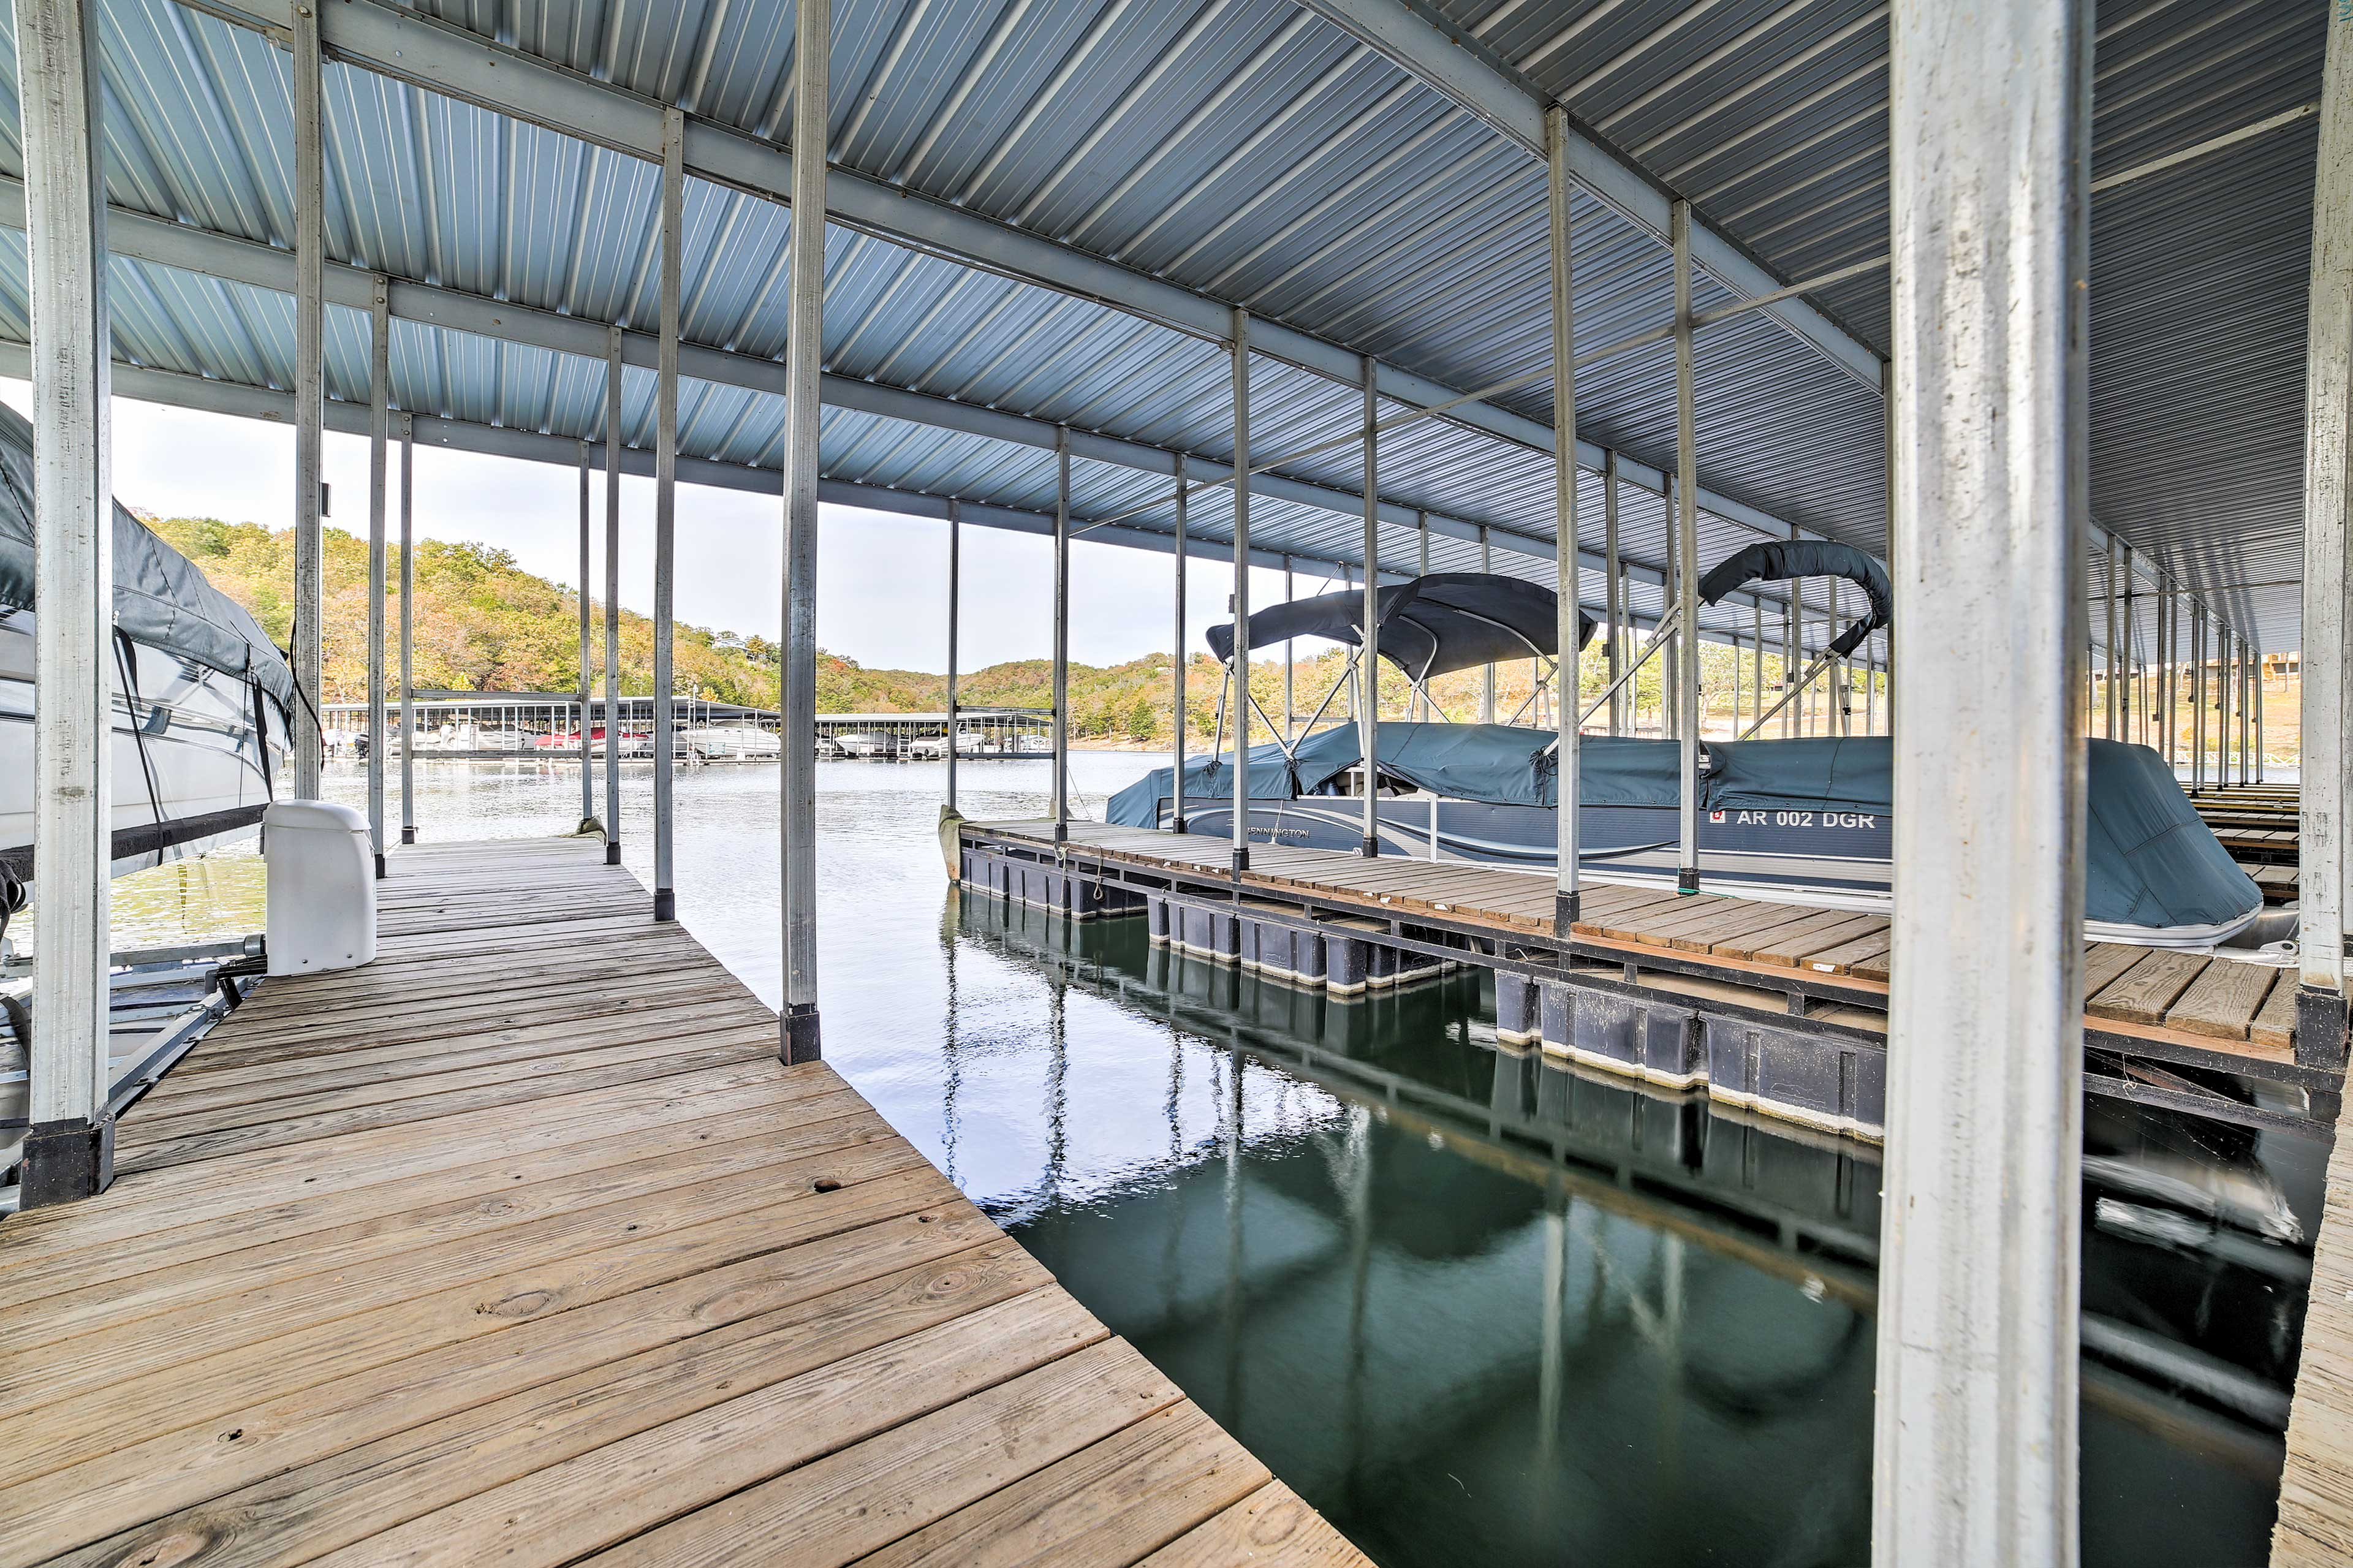 Lakeside activities are not far with the proximity to the Indian Point Marina